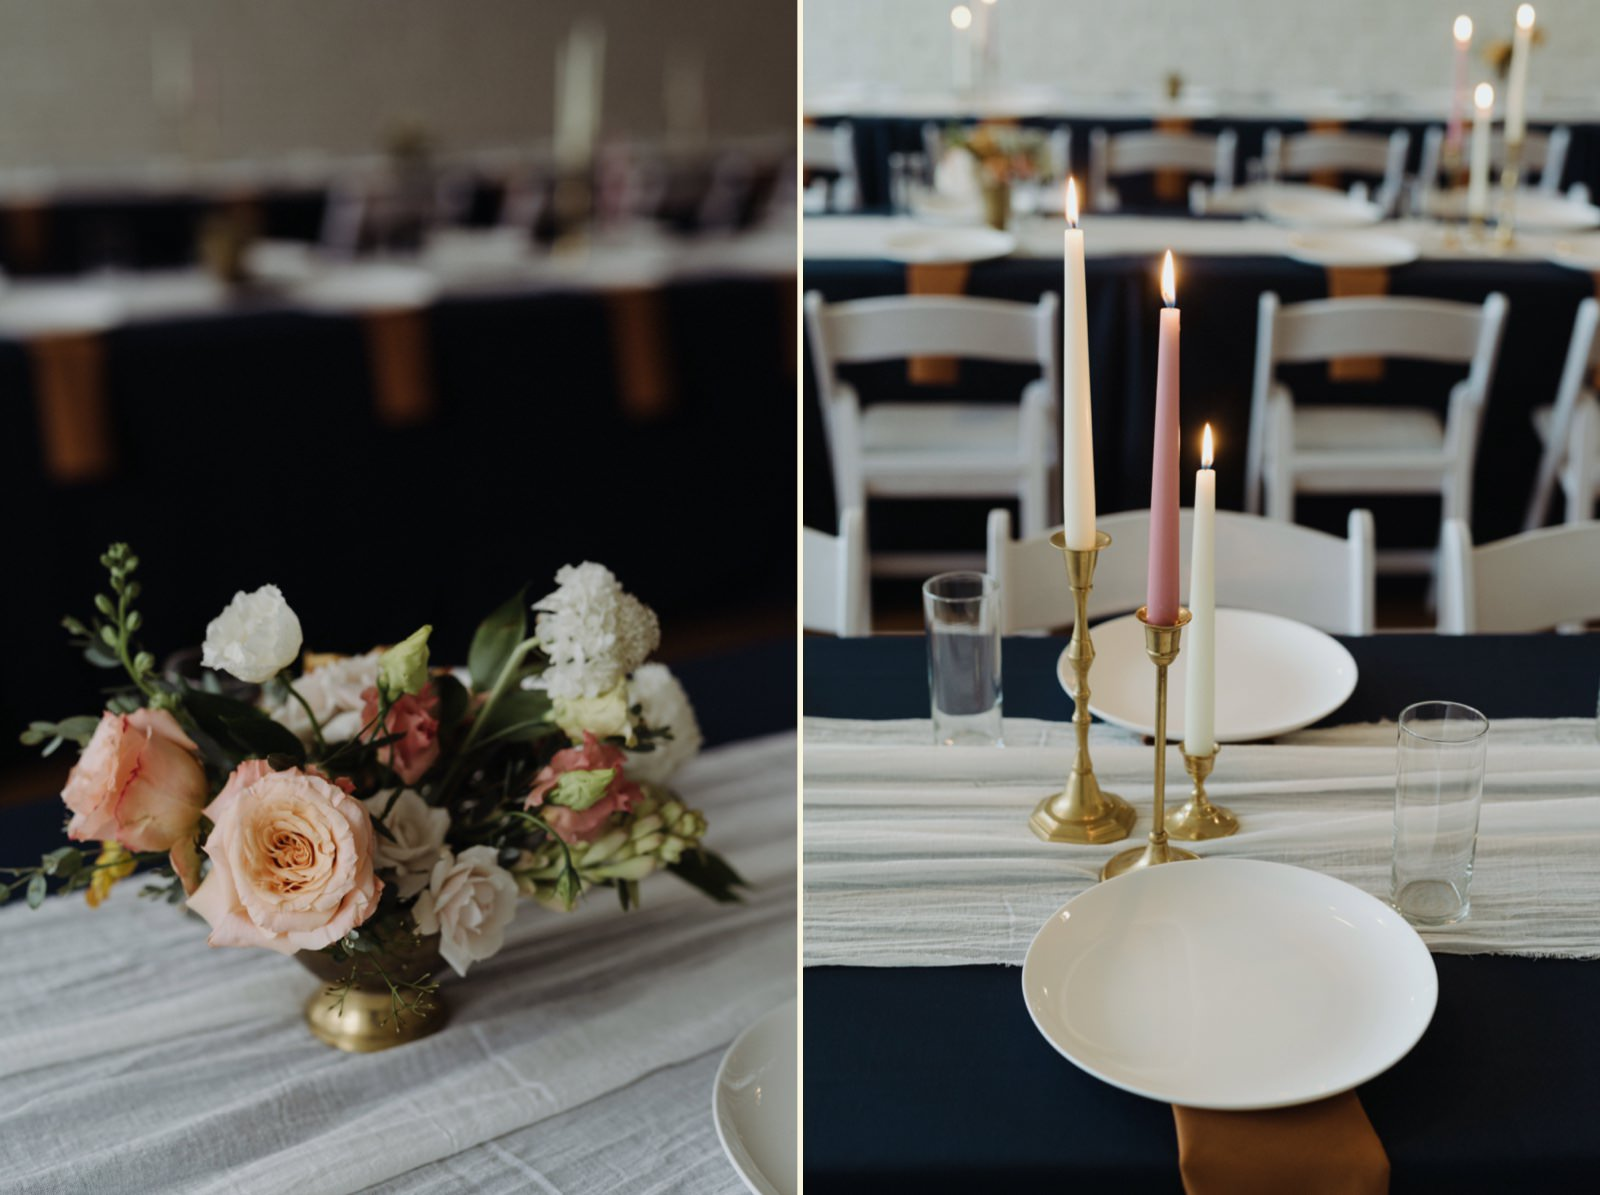 Coral, greenery and offwhite florals with golden candlesticks wedding decor inspiration